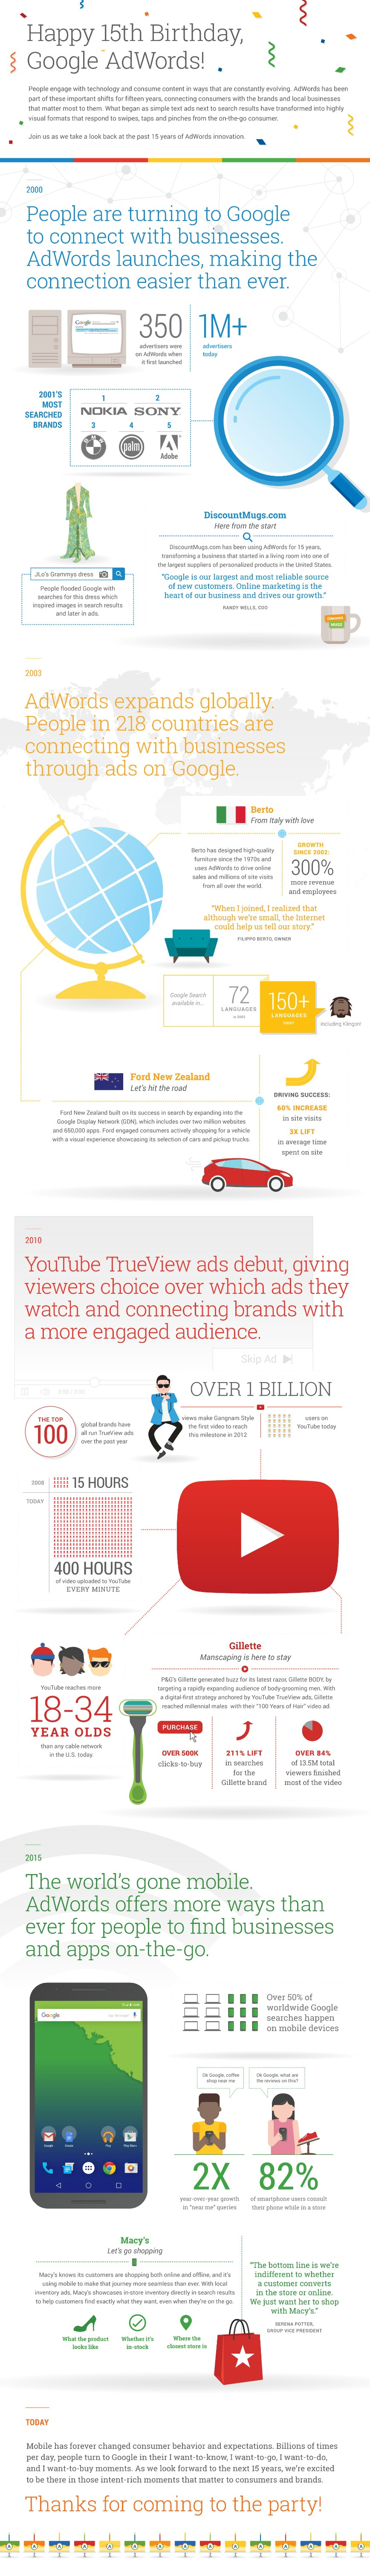 15 primeros años de Google Adwords #infografia #infographic #marketing